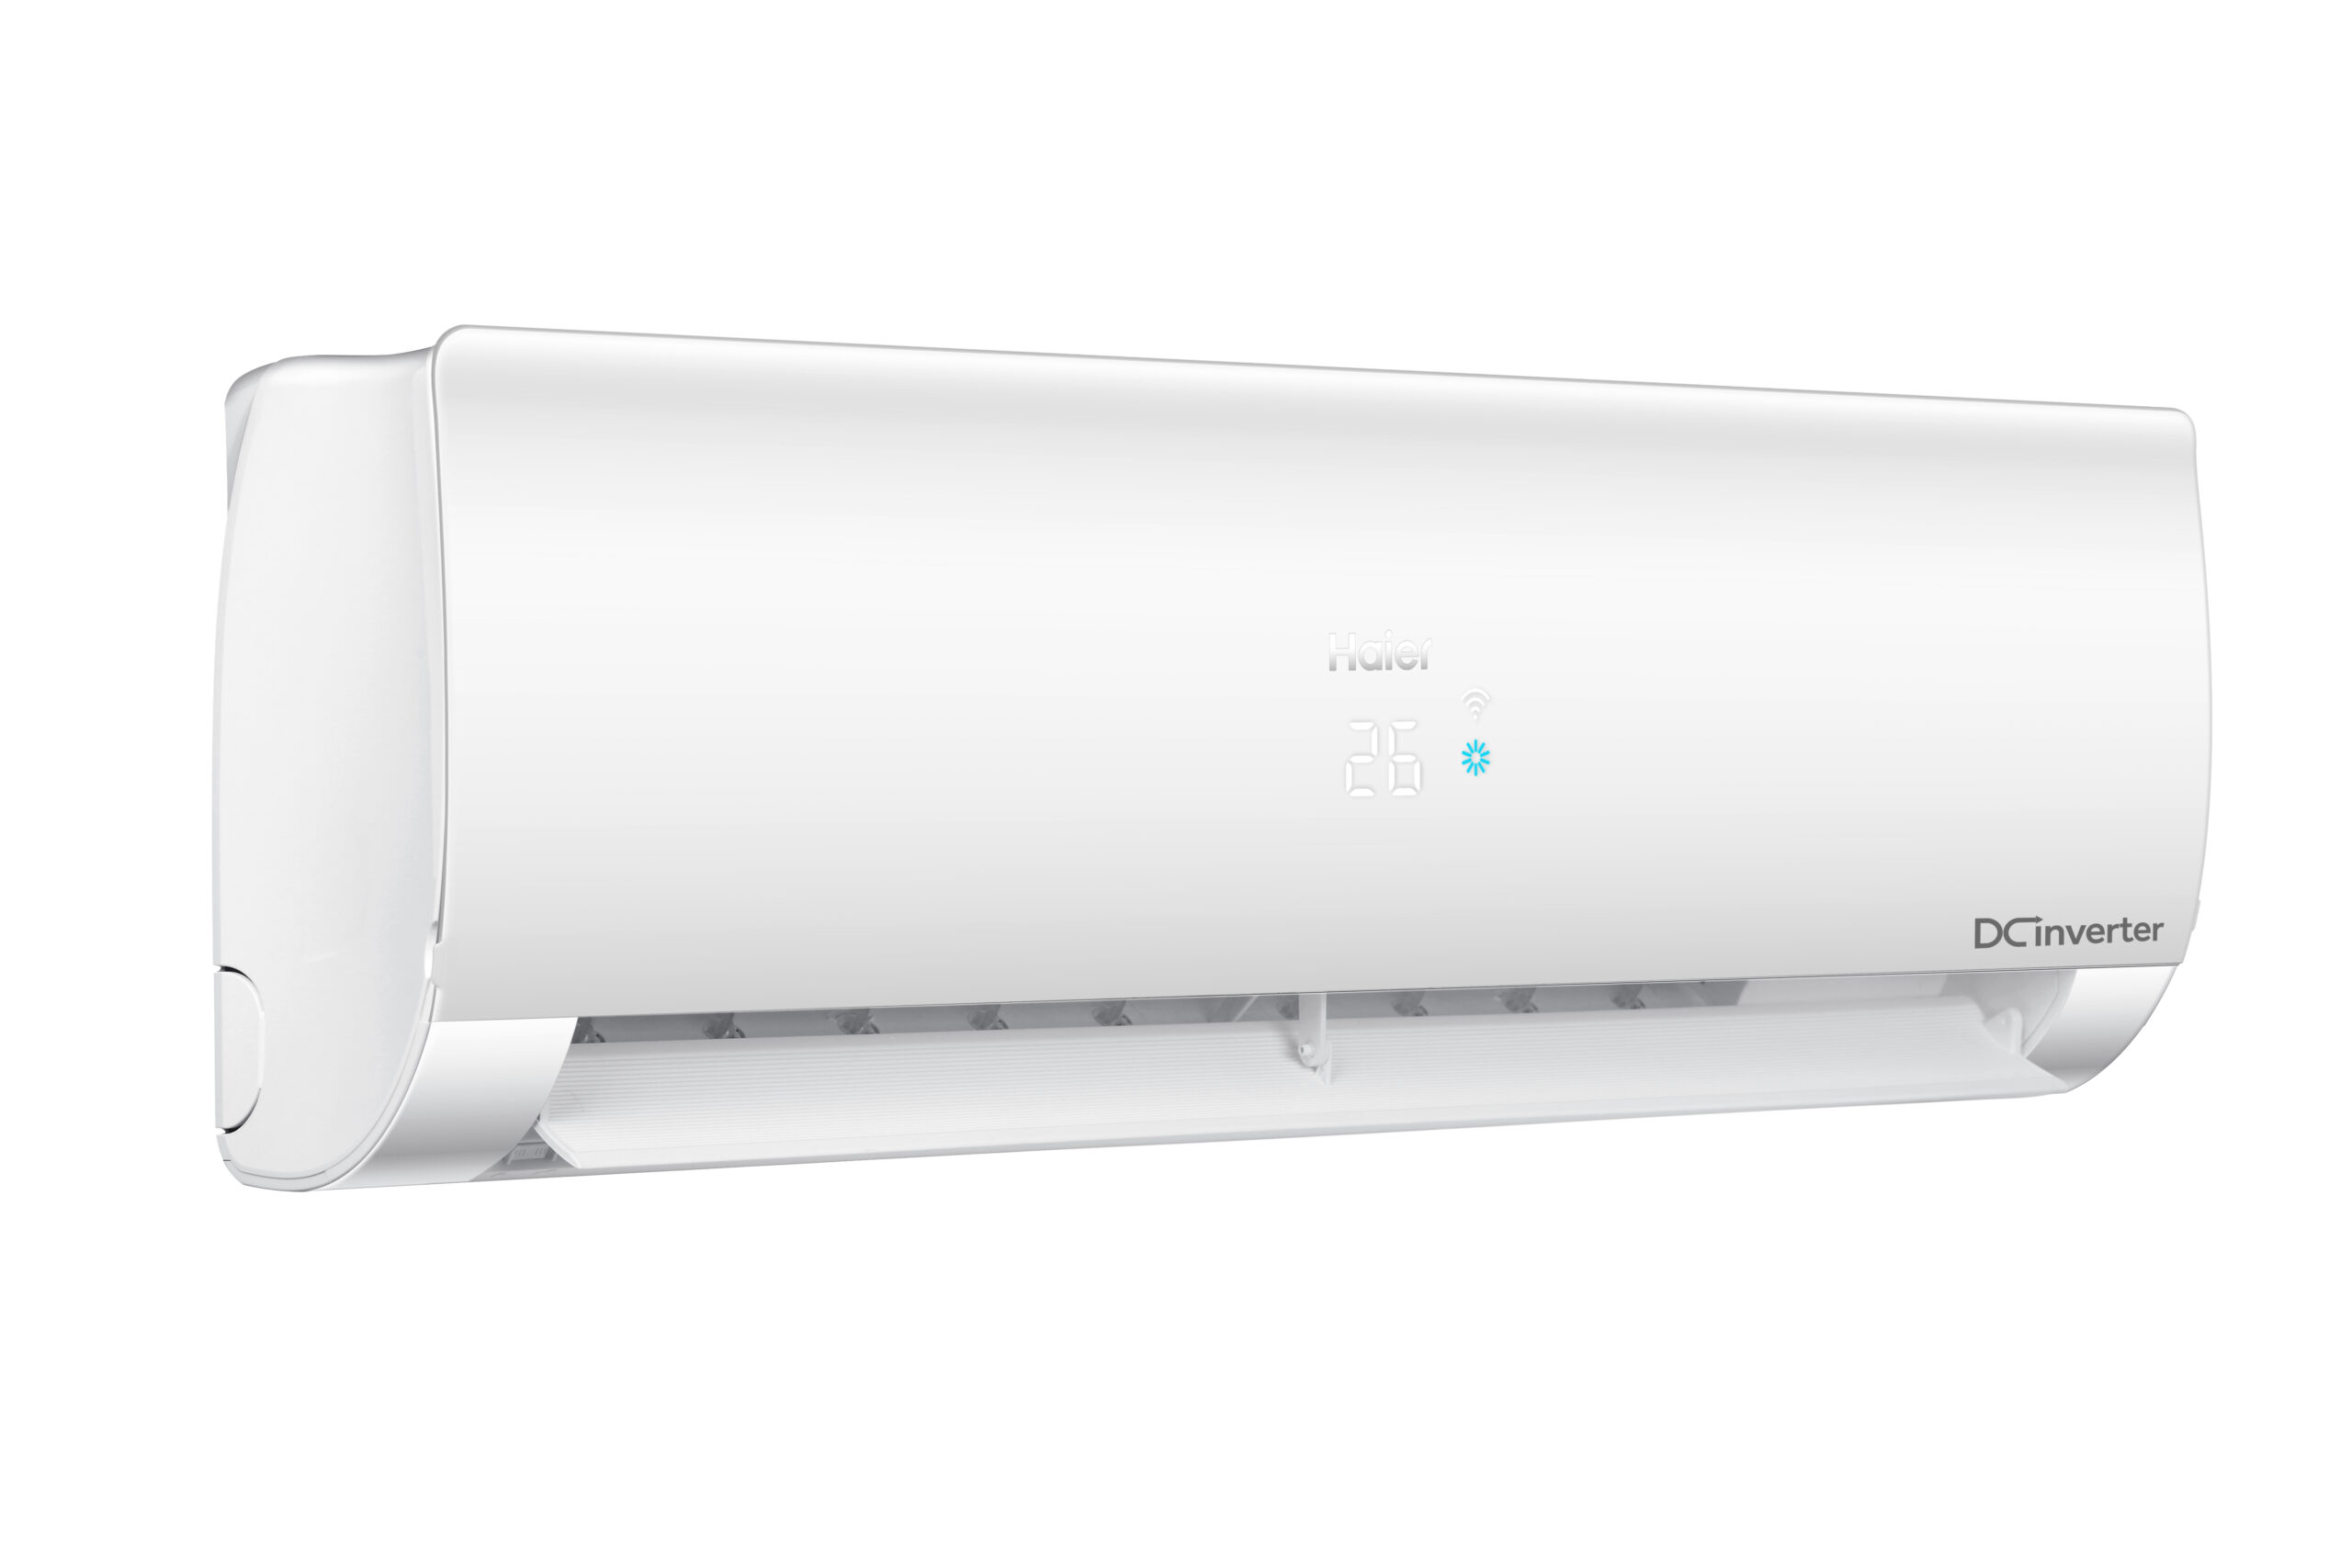 UV Clean Pro Air Conditioner for Healthy Air by Haier